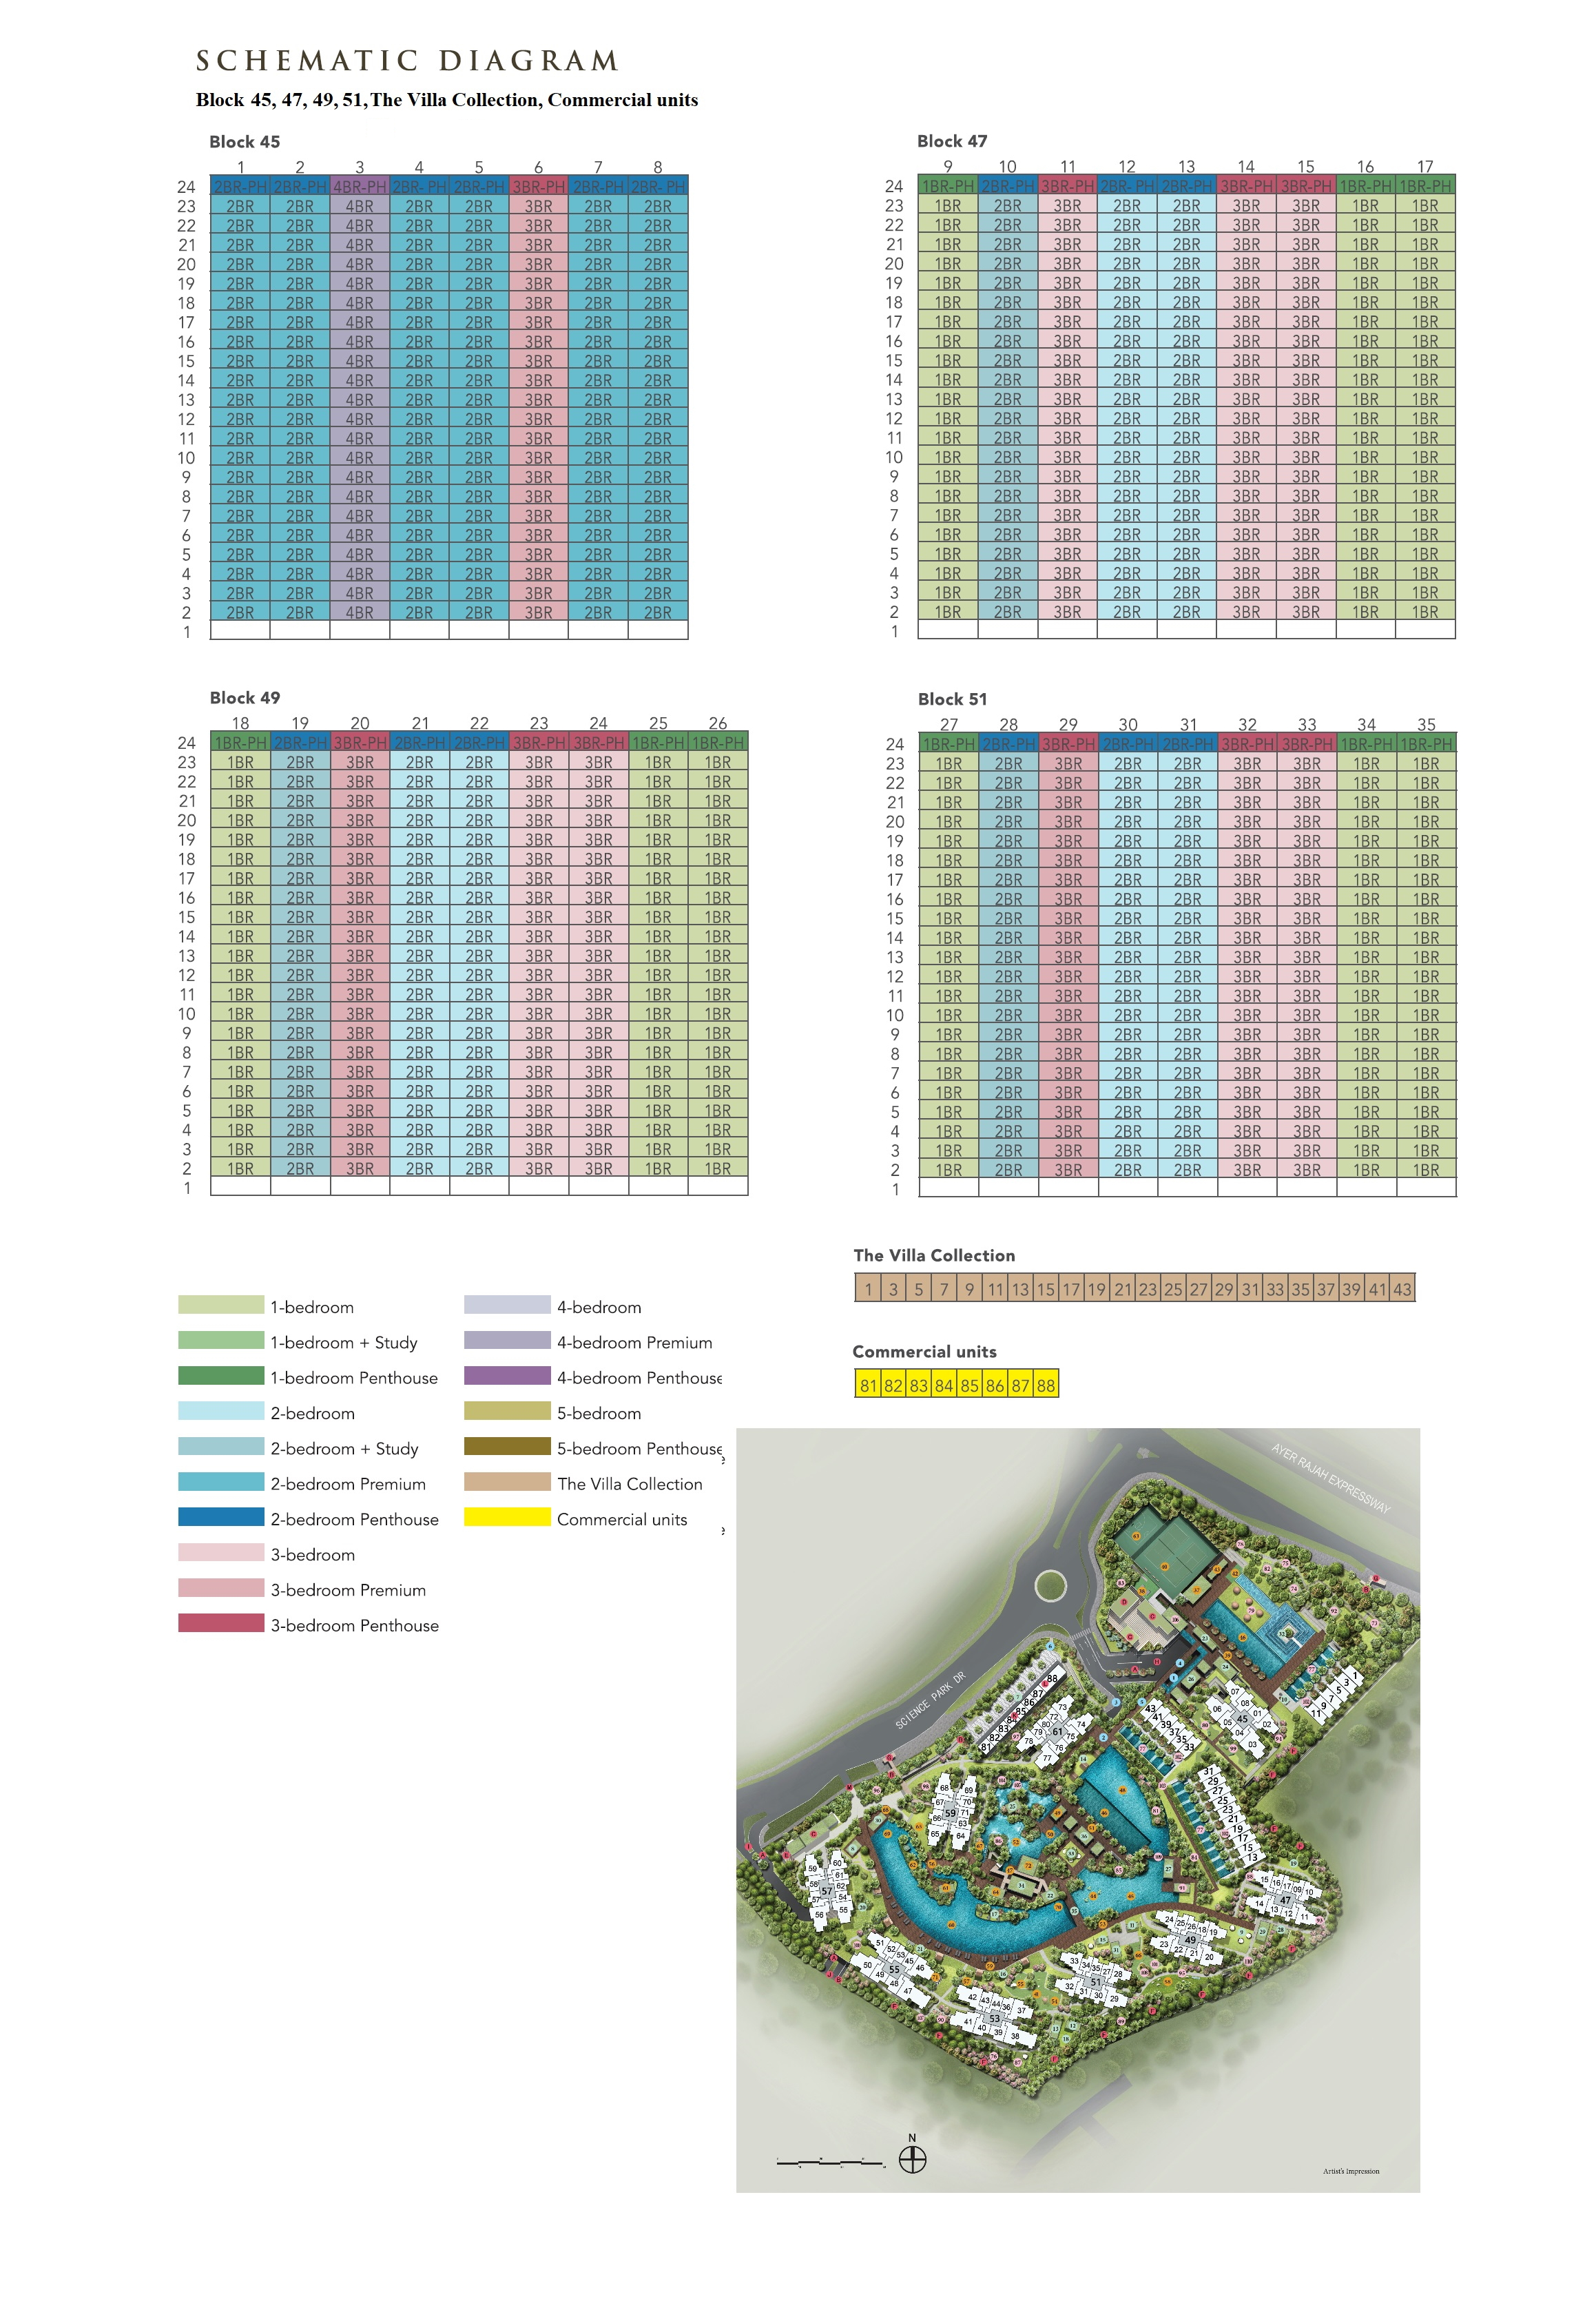 Normanton Park Elevation Chart Block 45, 47, 49, 51, The Villa Collection, Commercial Units